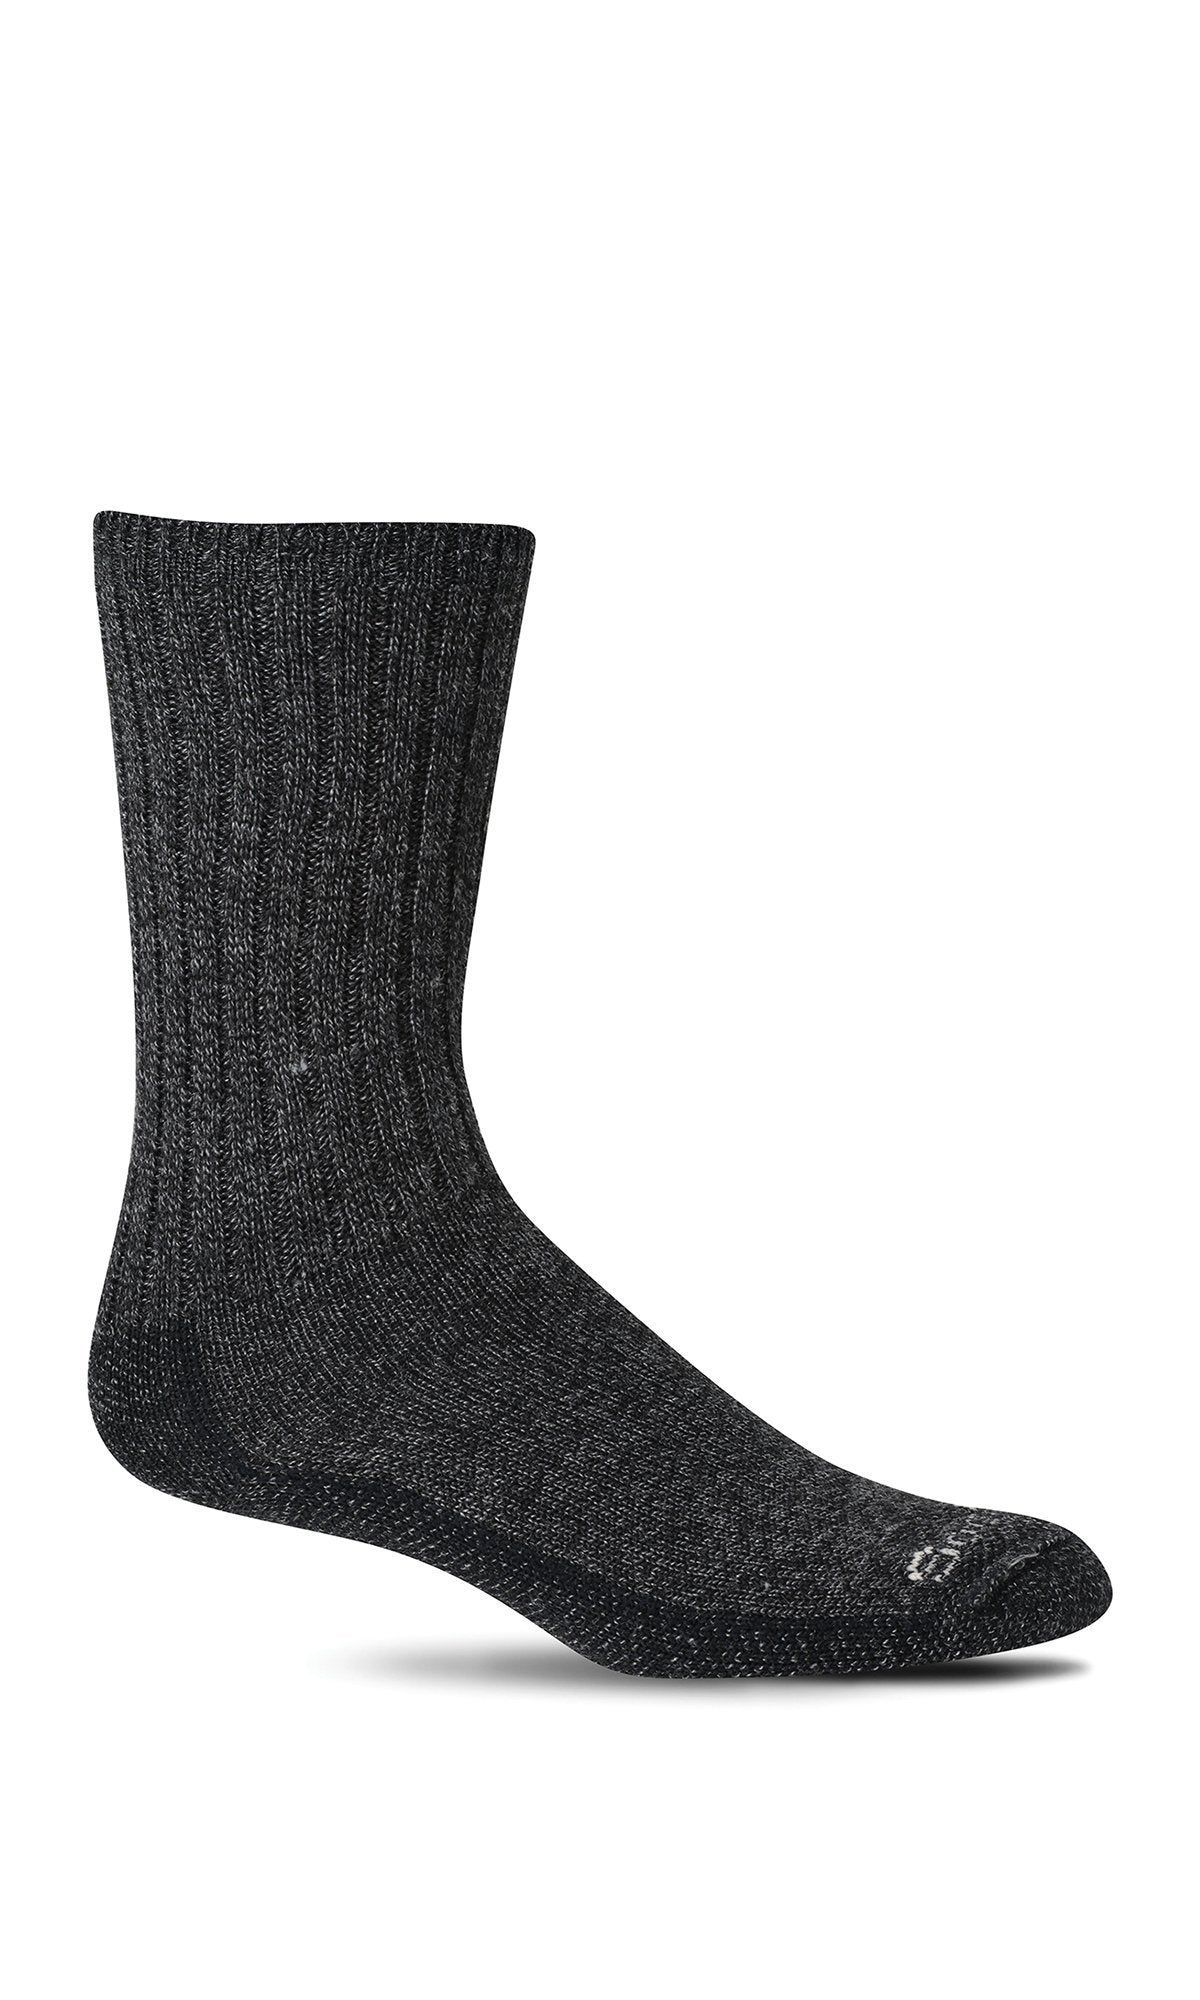 Sockwell - Big Easy Relaxed Diabetic Socks | Men's - Knock Your Socks Off